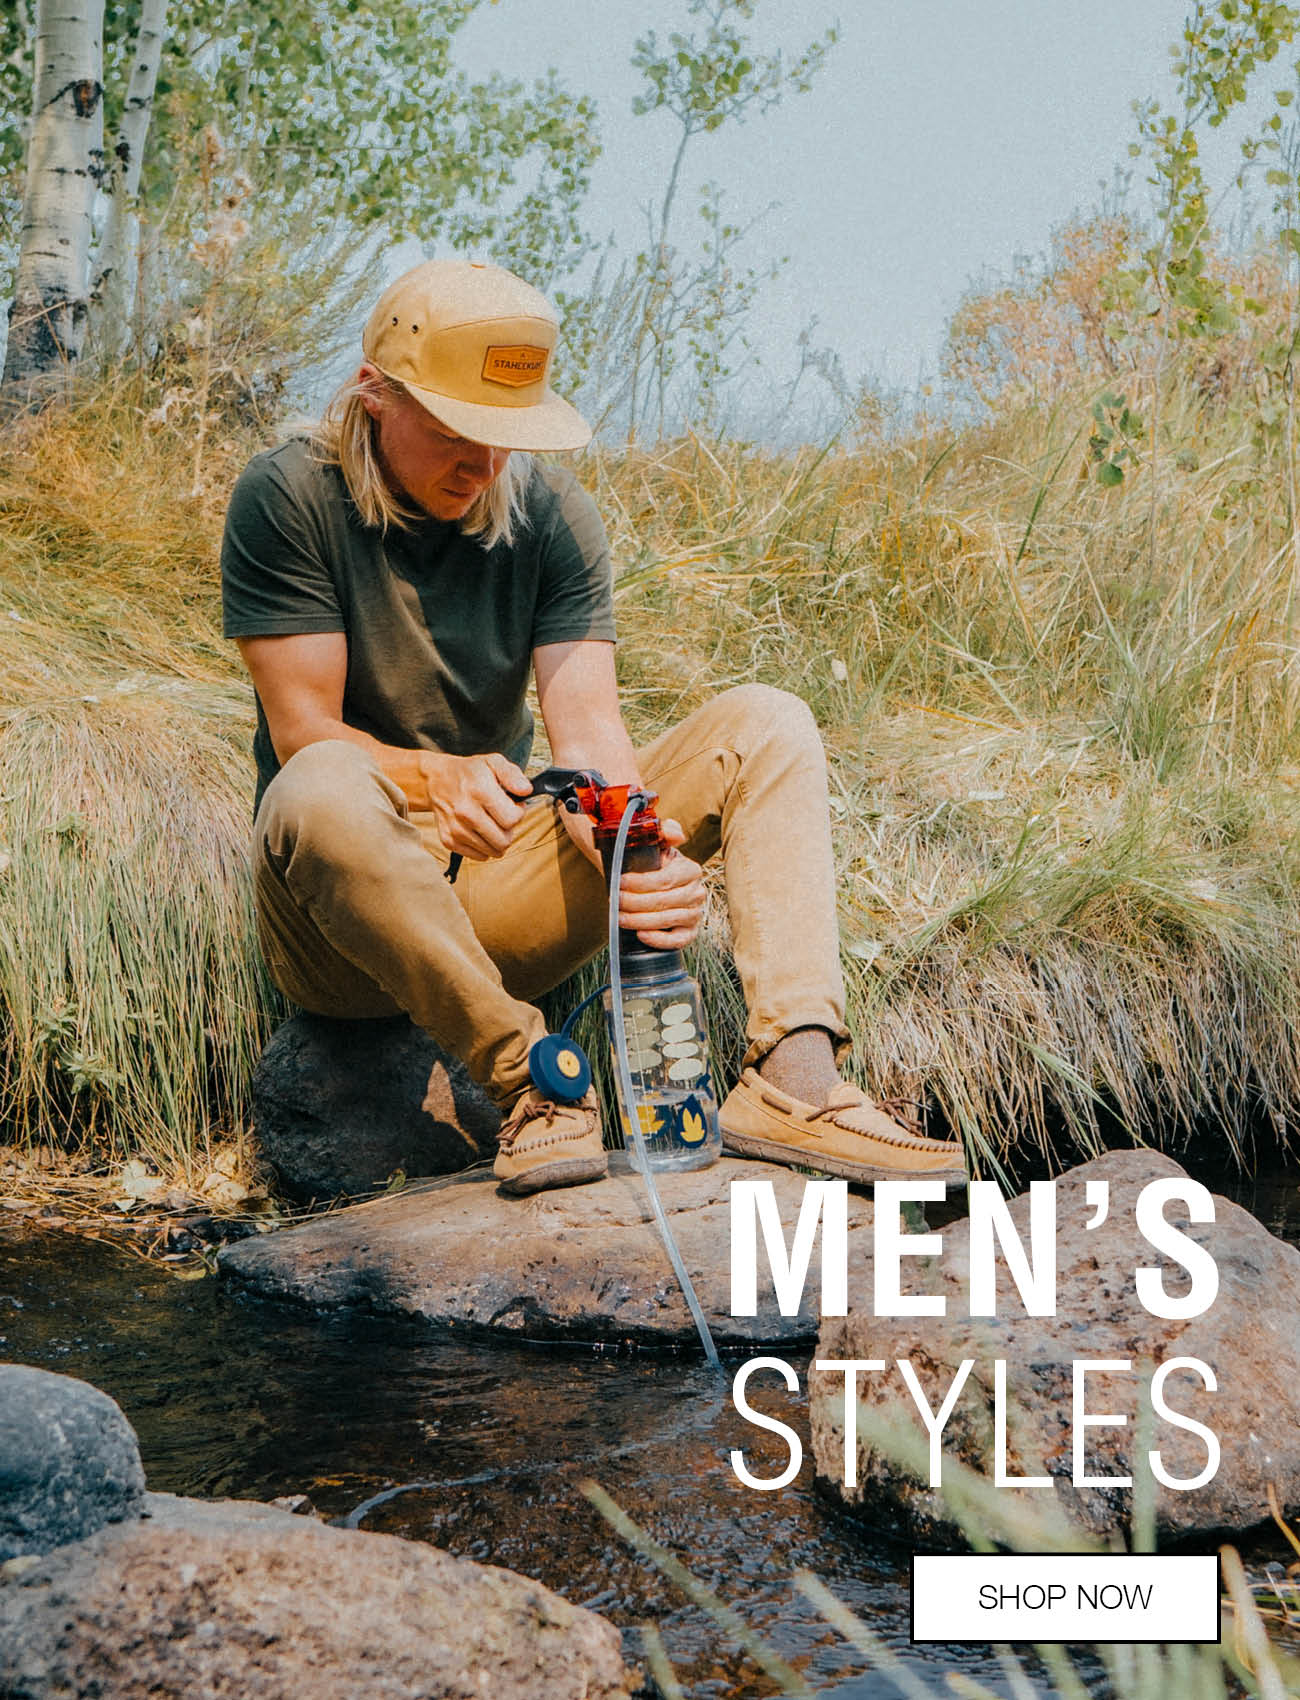 Staheekum Men's Styles Shop Now